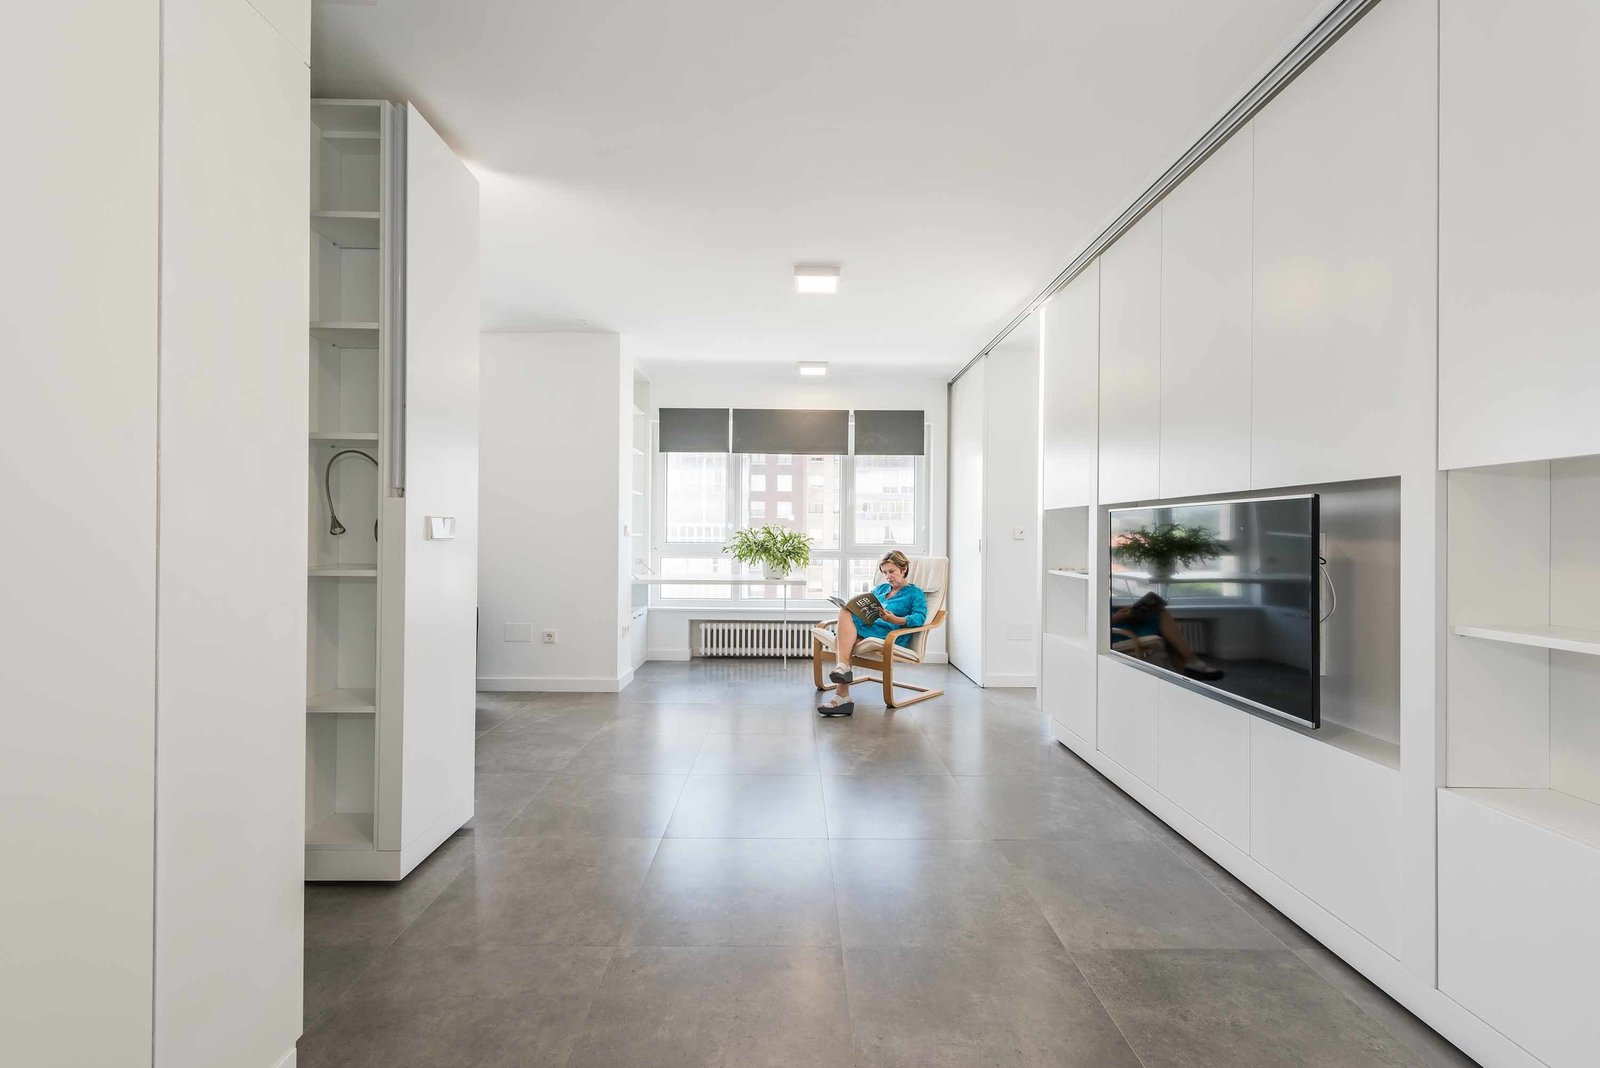 """Living Room, Ceramic Tile Floor, Ceiling Lighting, Storage, and Chair Viewed from the entryway, the living room is the main gathering space of the home. Dated parquet floors were replaced with modern ceramic tile. All walls and ceilings were re-plastered, and old windows were upgraded with energy-efficient double-glazed glass.  Search """"entryway"""" from Movable Walls Instantly Transform a Small Vacation Home from a Two-Bedroom to a Studio"""